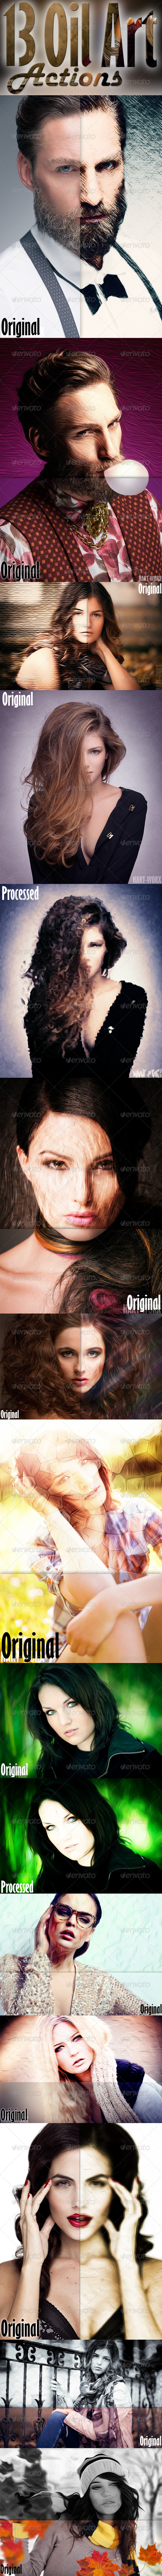 GraphicRiver 13 Oil Art Actions 8014739